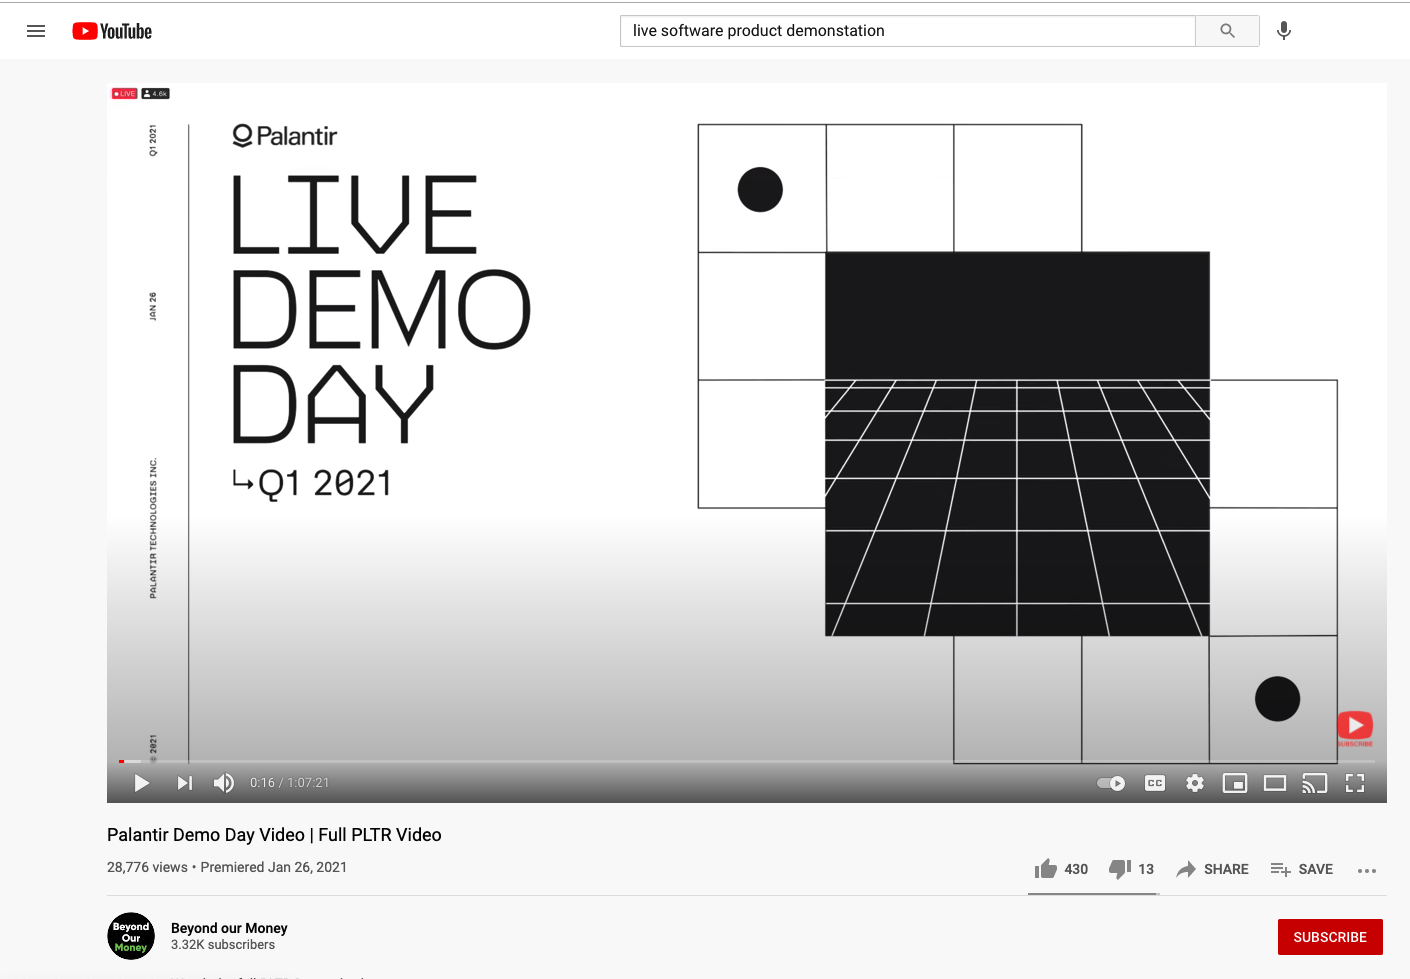 Palantir shares a webcast of their product demonstration event on YouTube